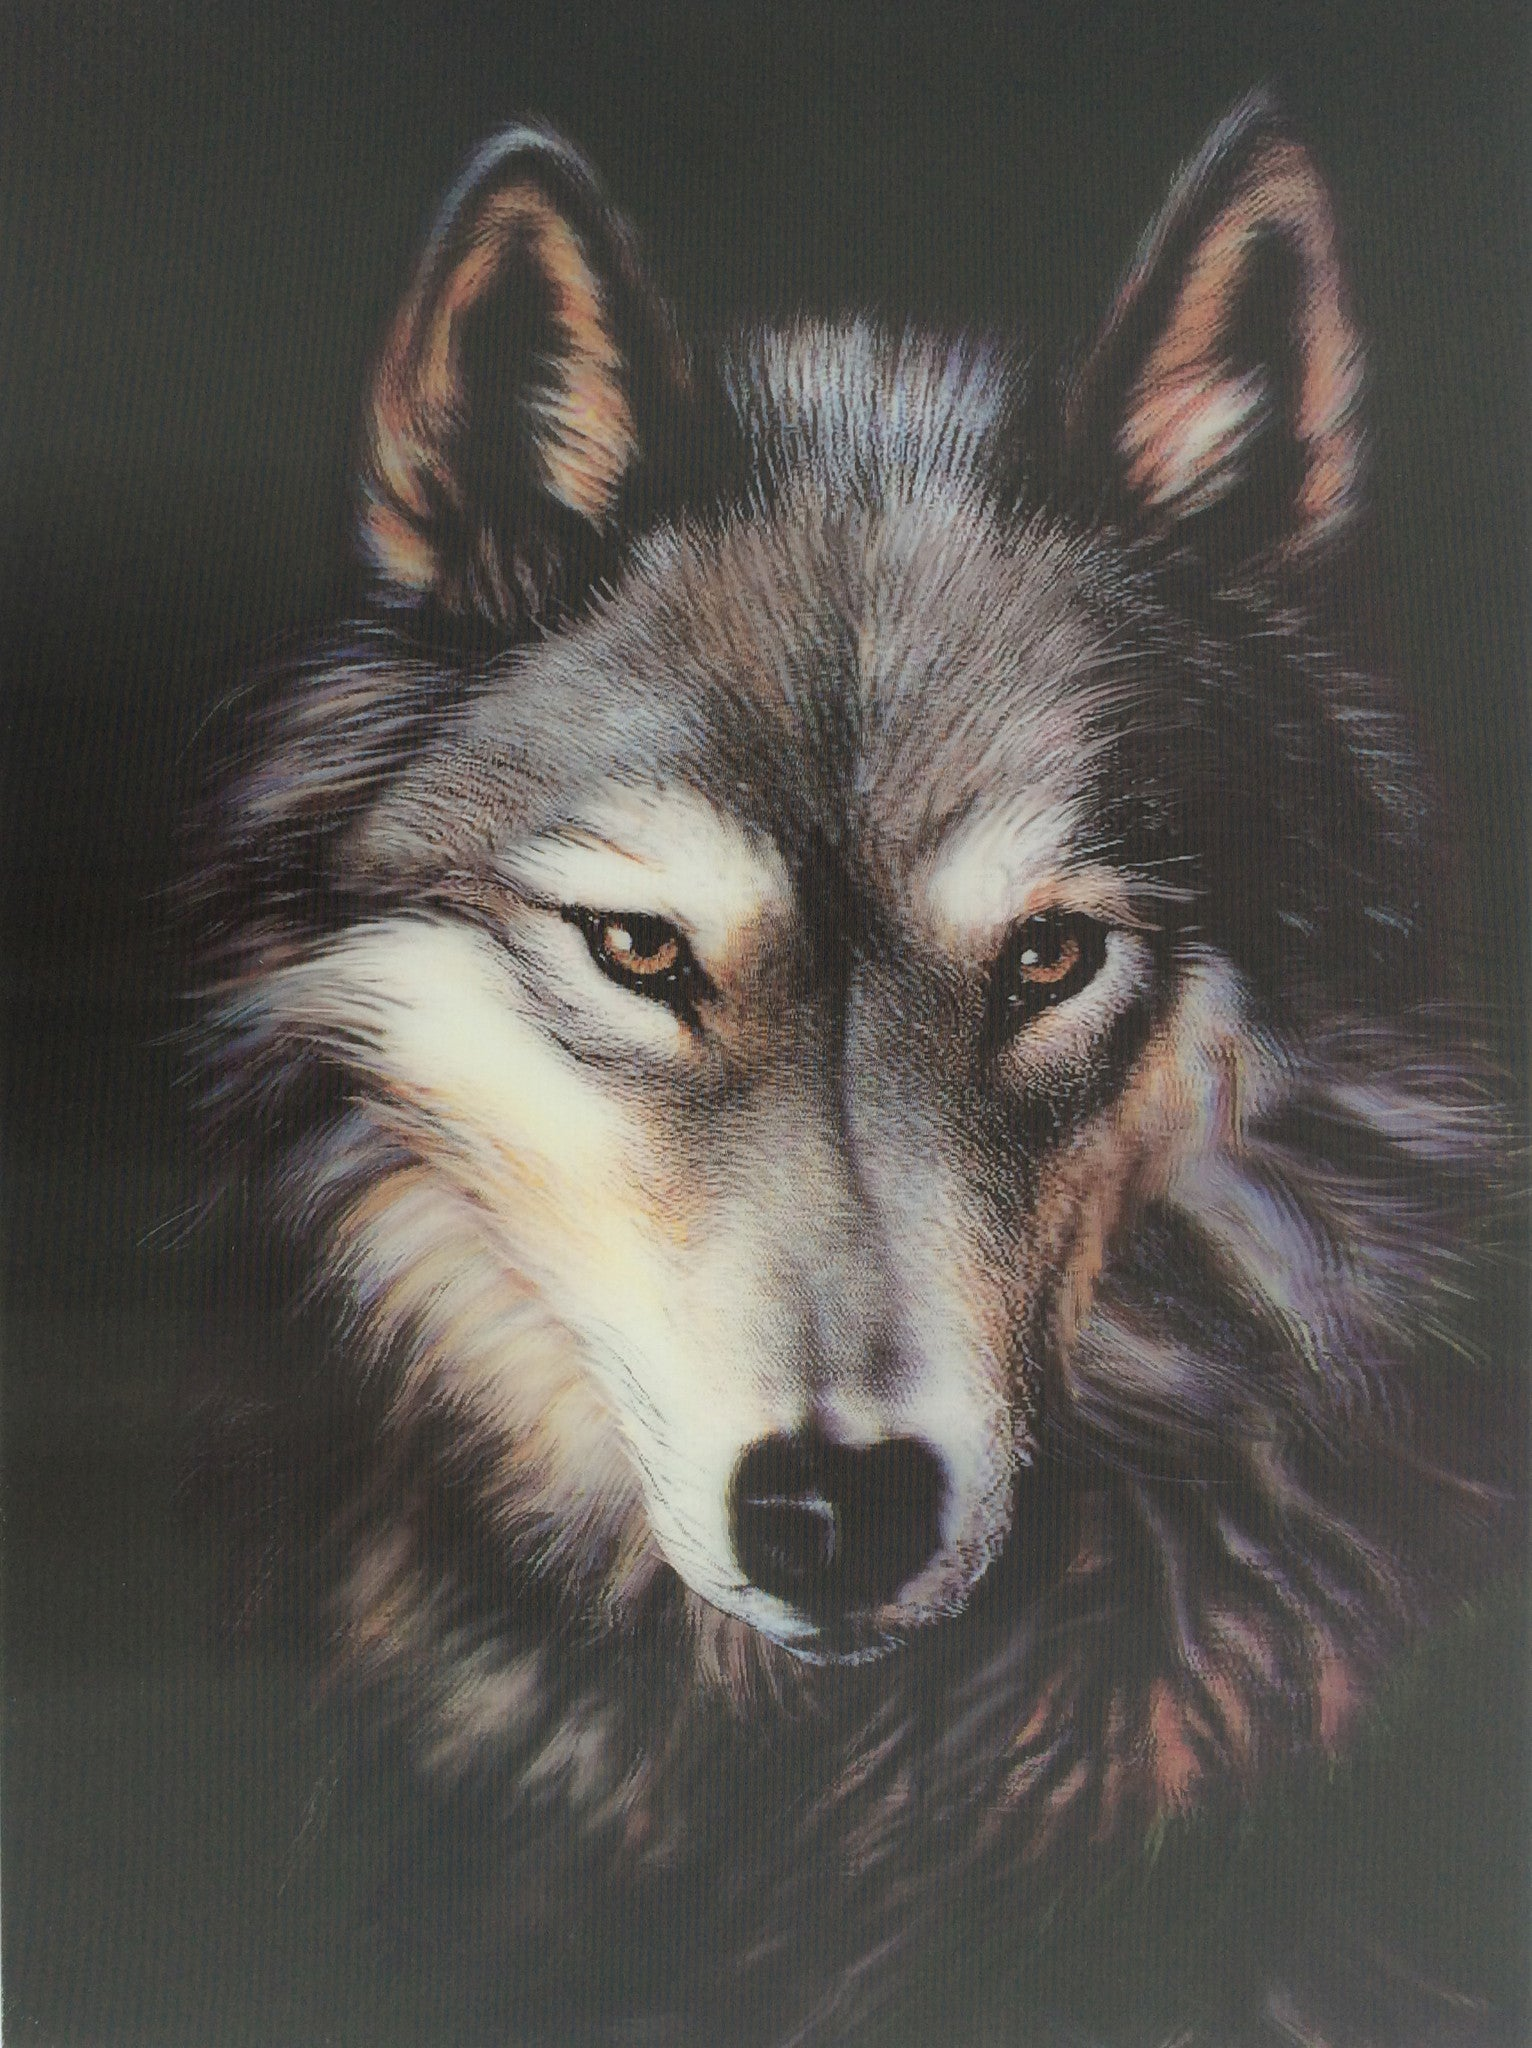 W 8 Wolf Faces And Moon 3d Picture 3dddpictures Com